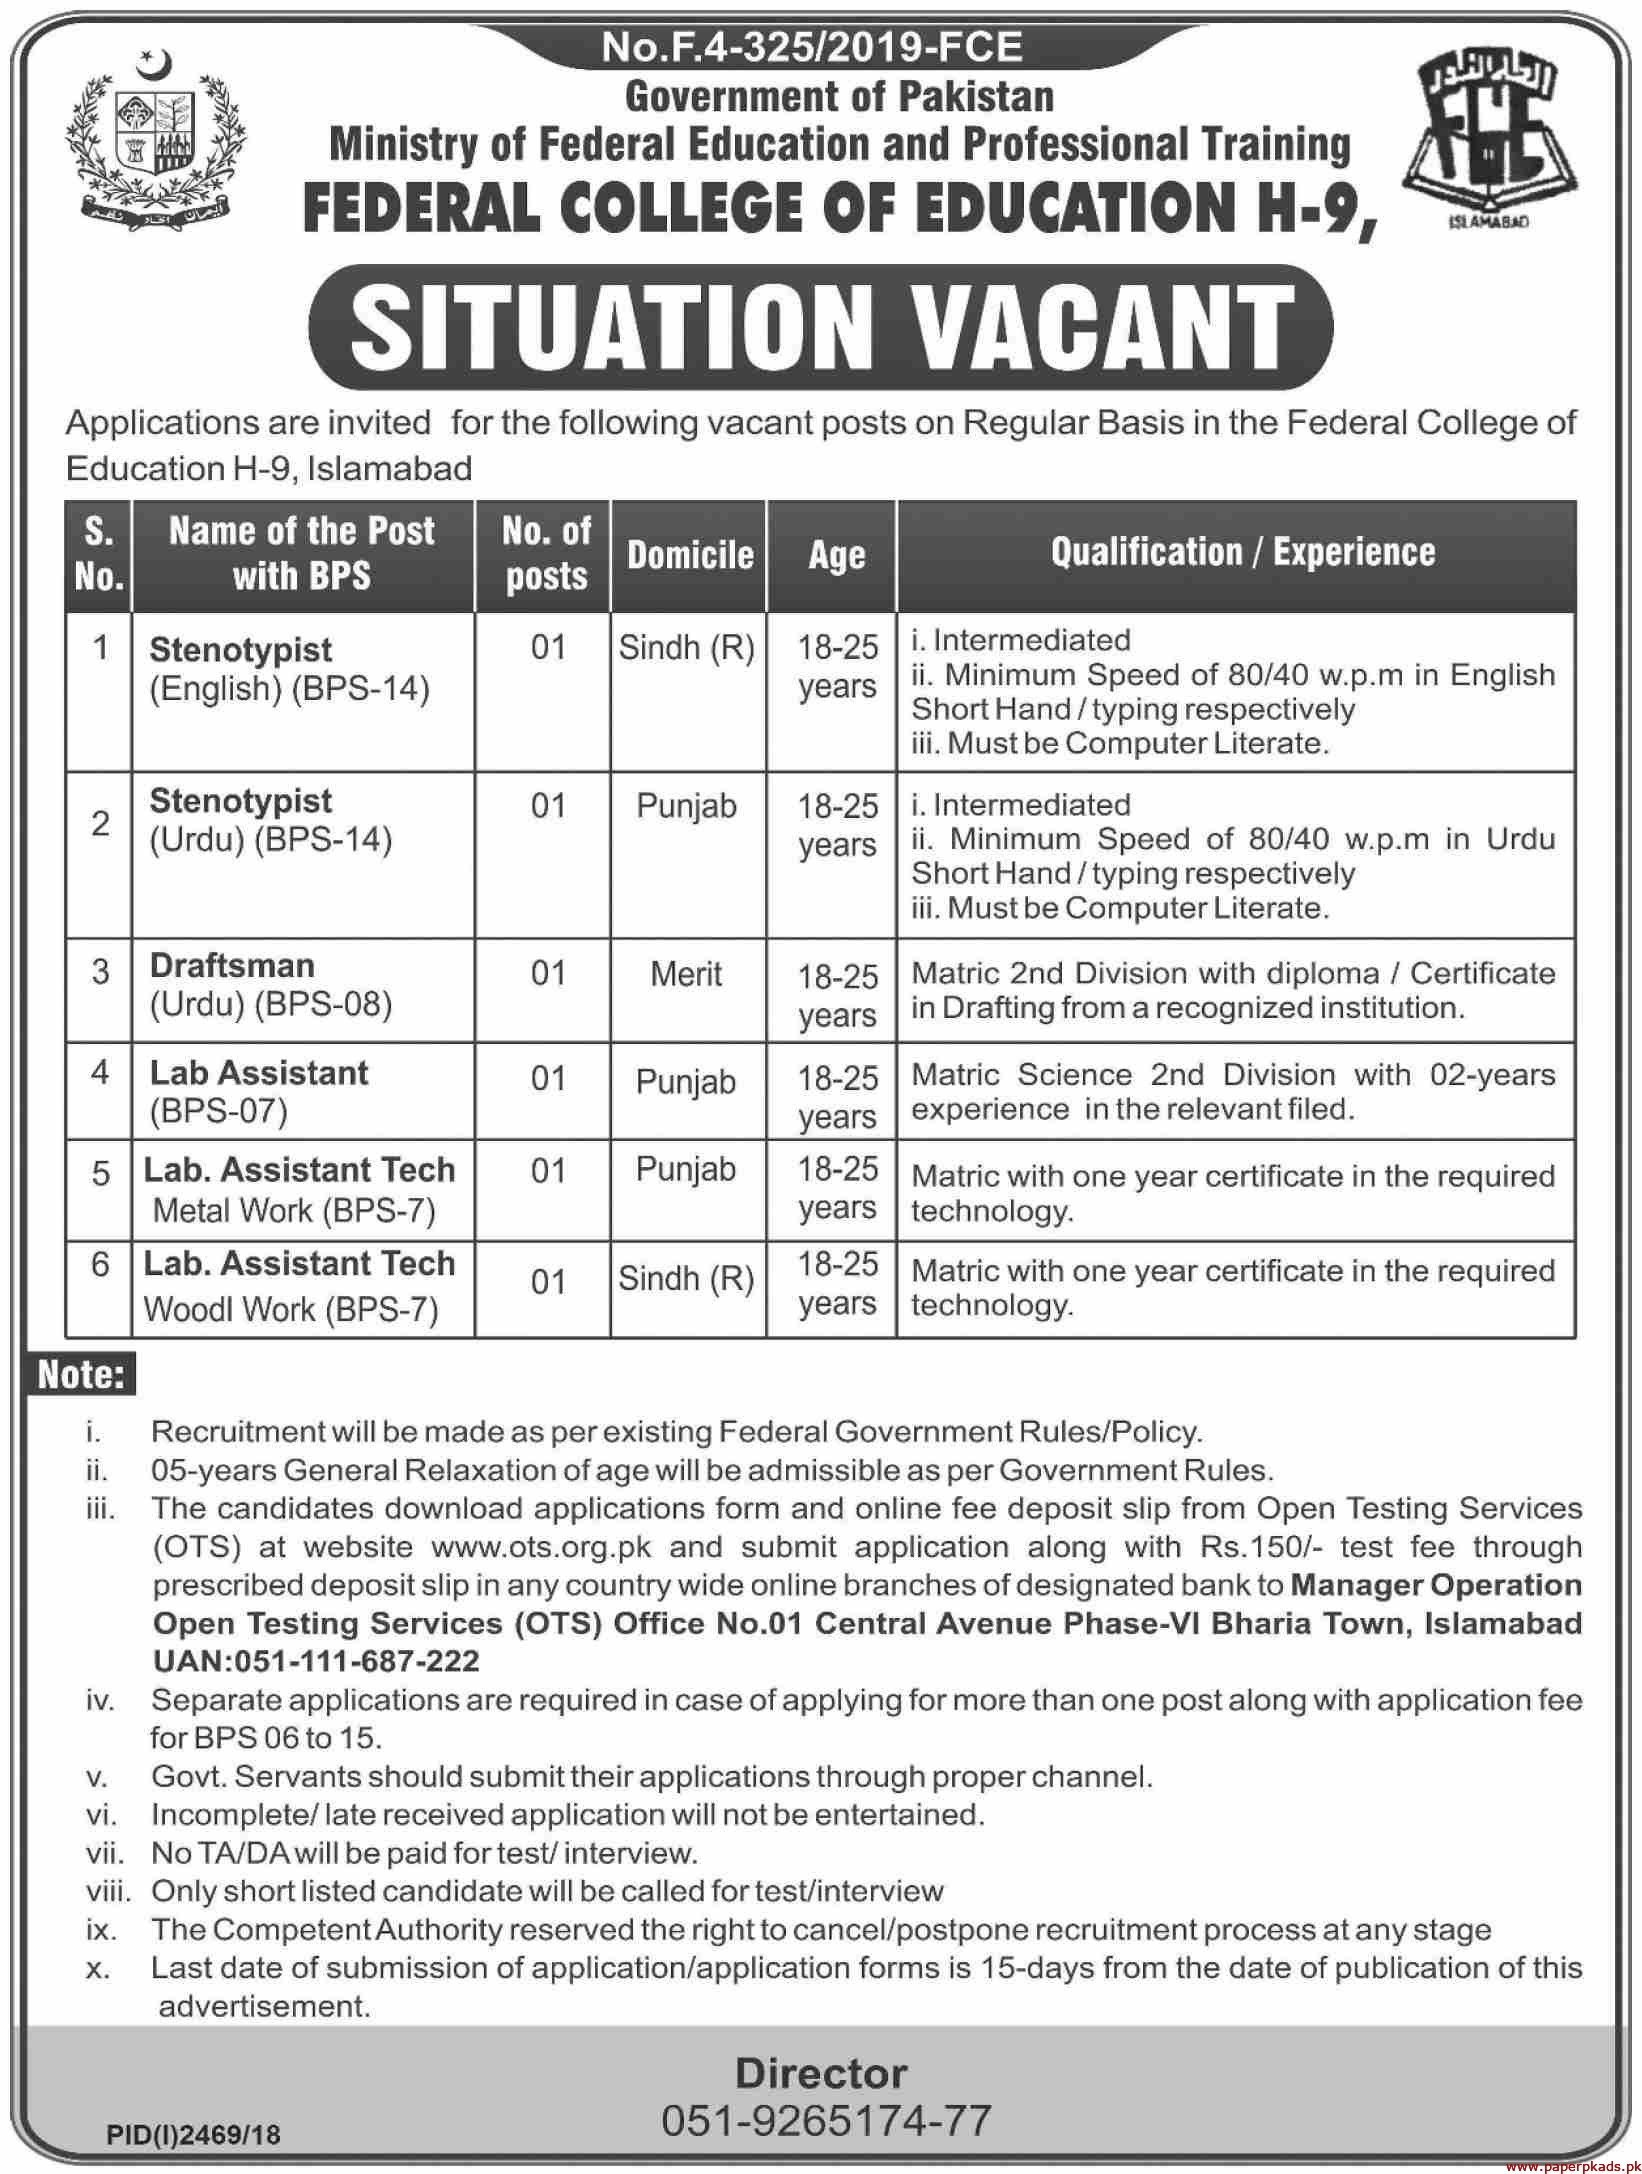 Federal College of Education Pakistan Jobs 2019 Latest